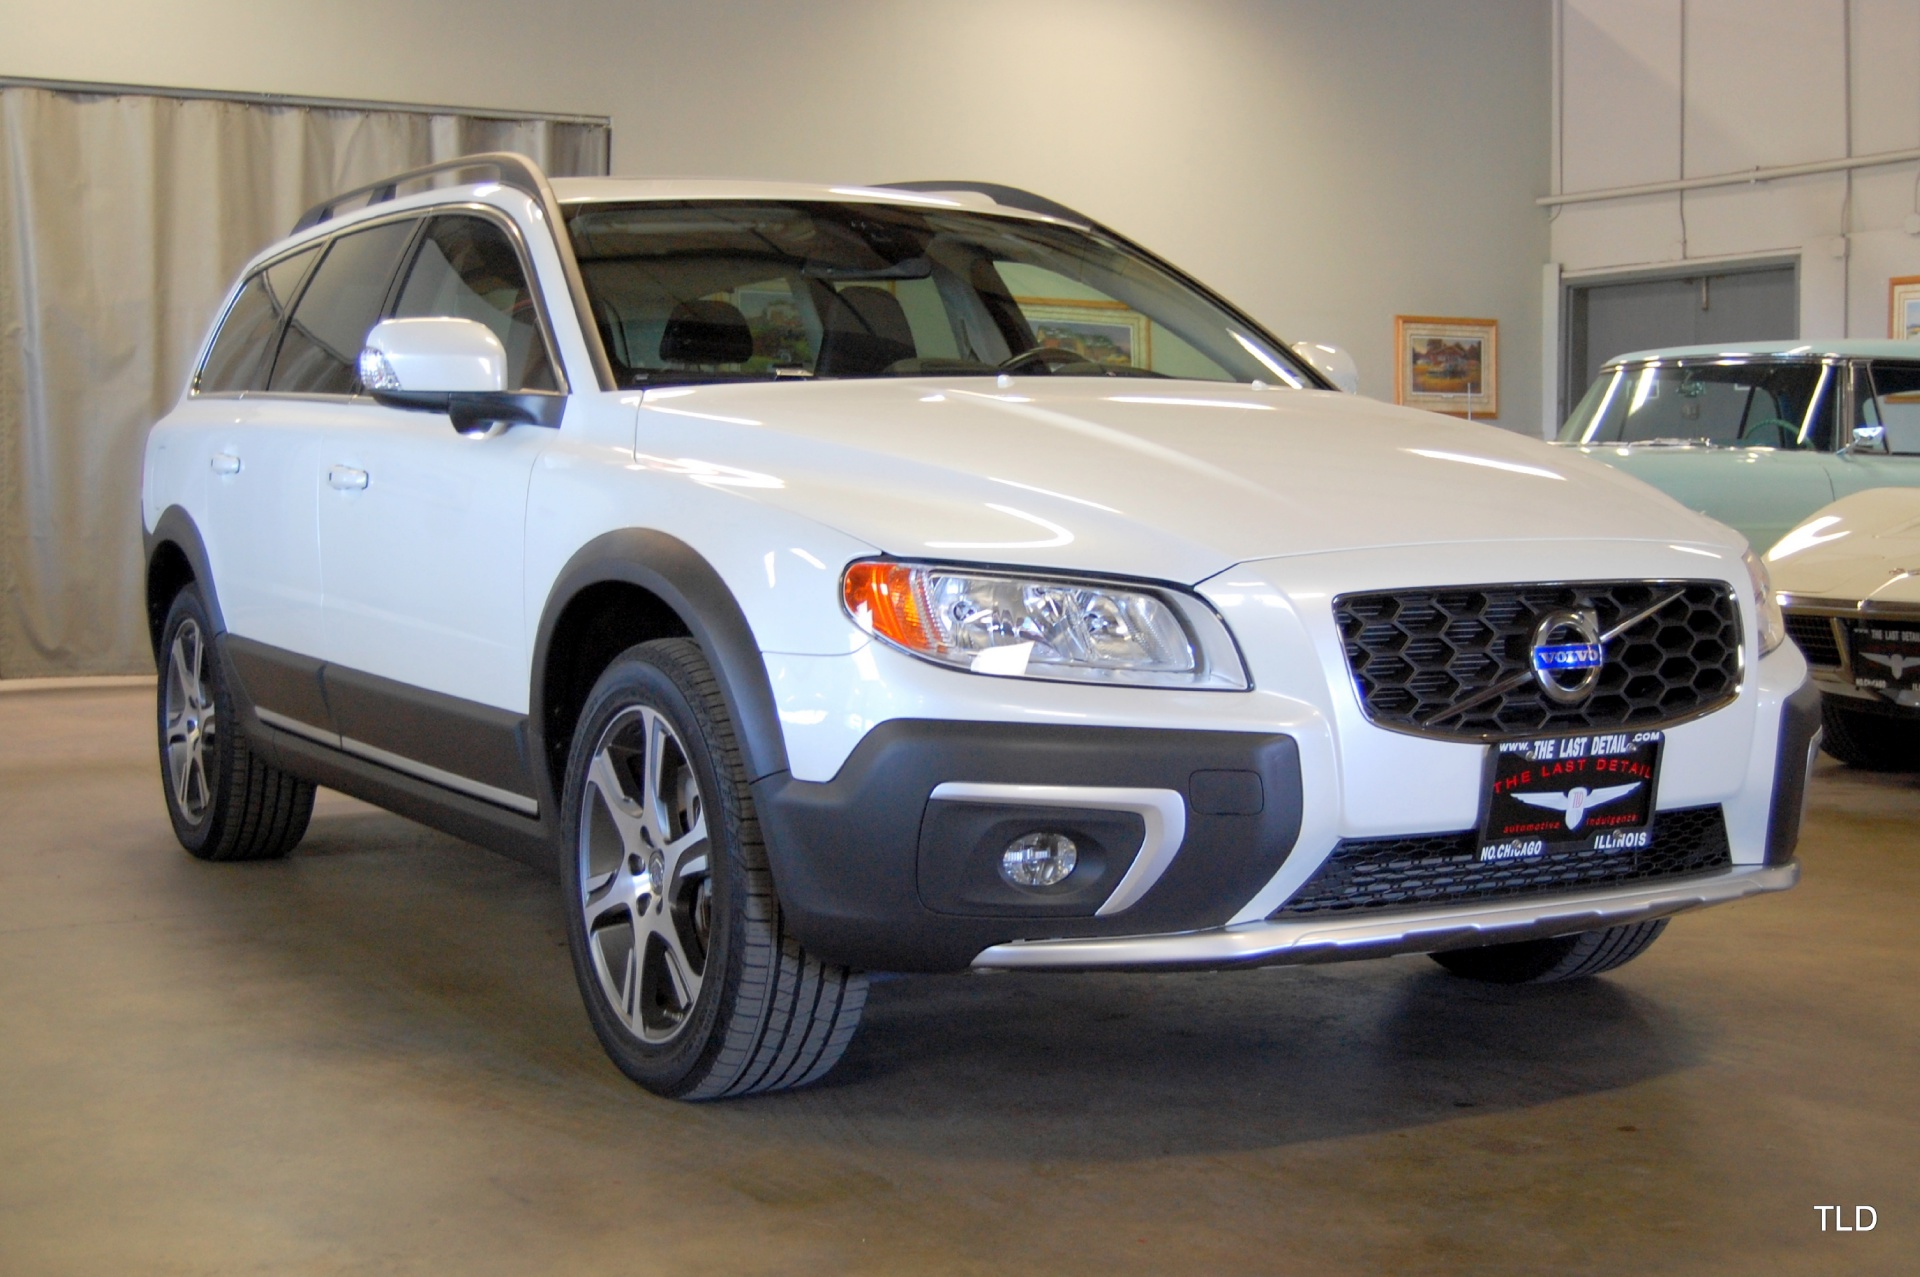 2015 volvo xc70 used volvo xc70 for sale in north chicago illinois. Black Bedroom Furniture Sets. Home Design Ideas